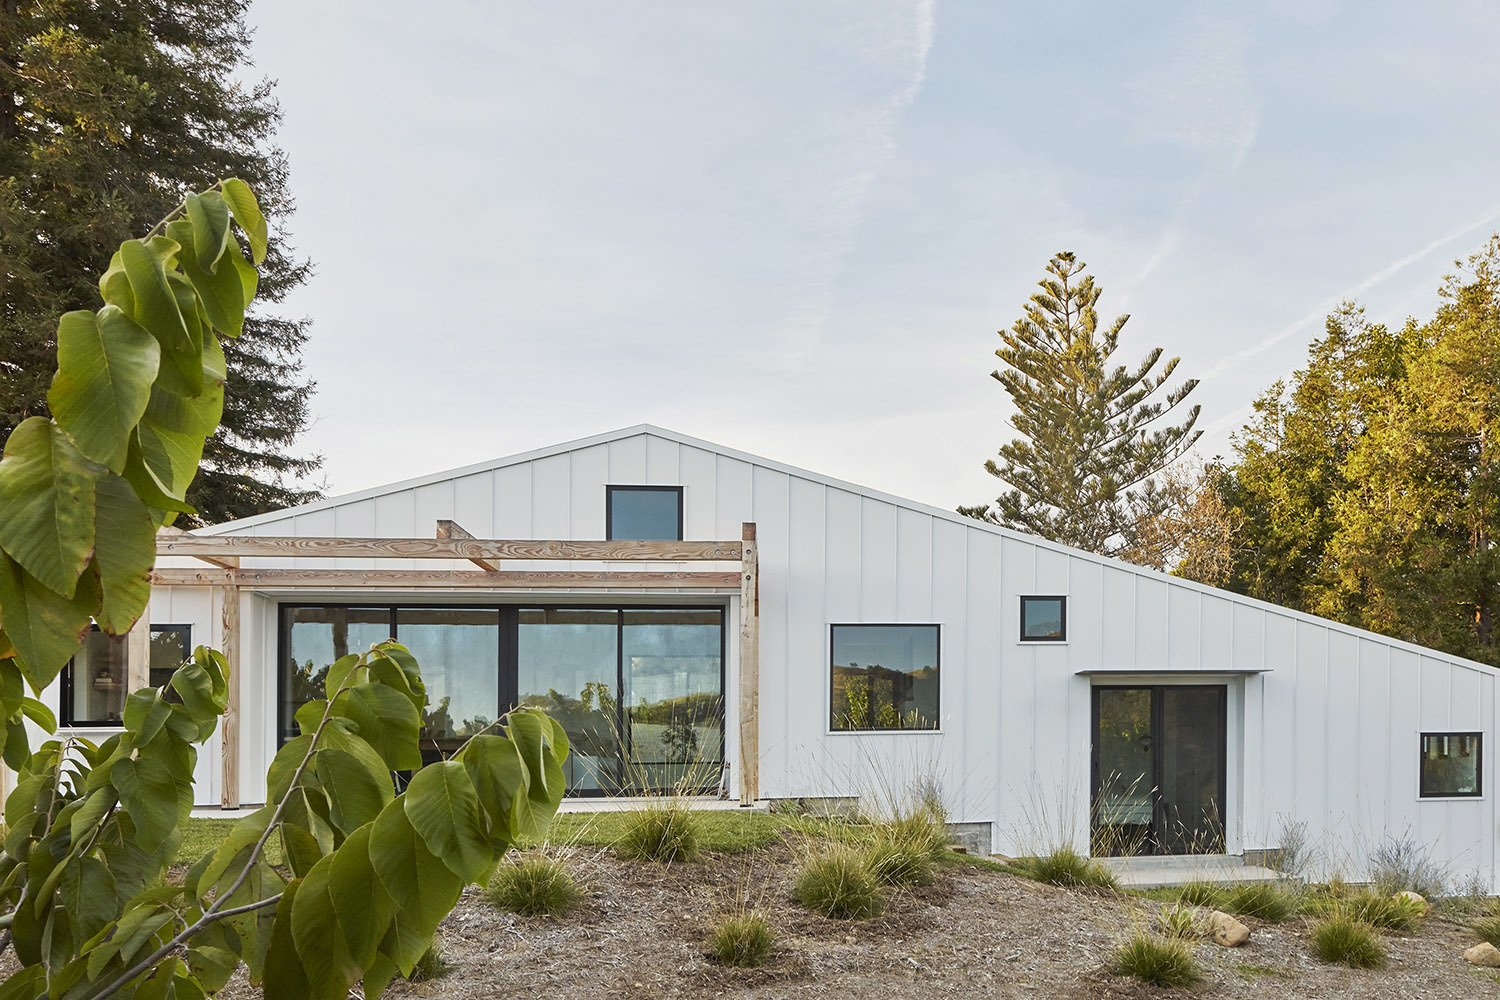 Exterior, House Building Type, Metal Roof Material, Gable RoofLine, and Metal Siding Material  Shepard Mesa House